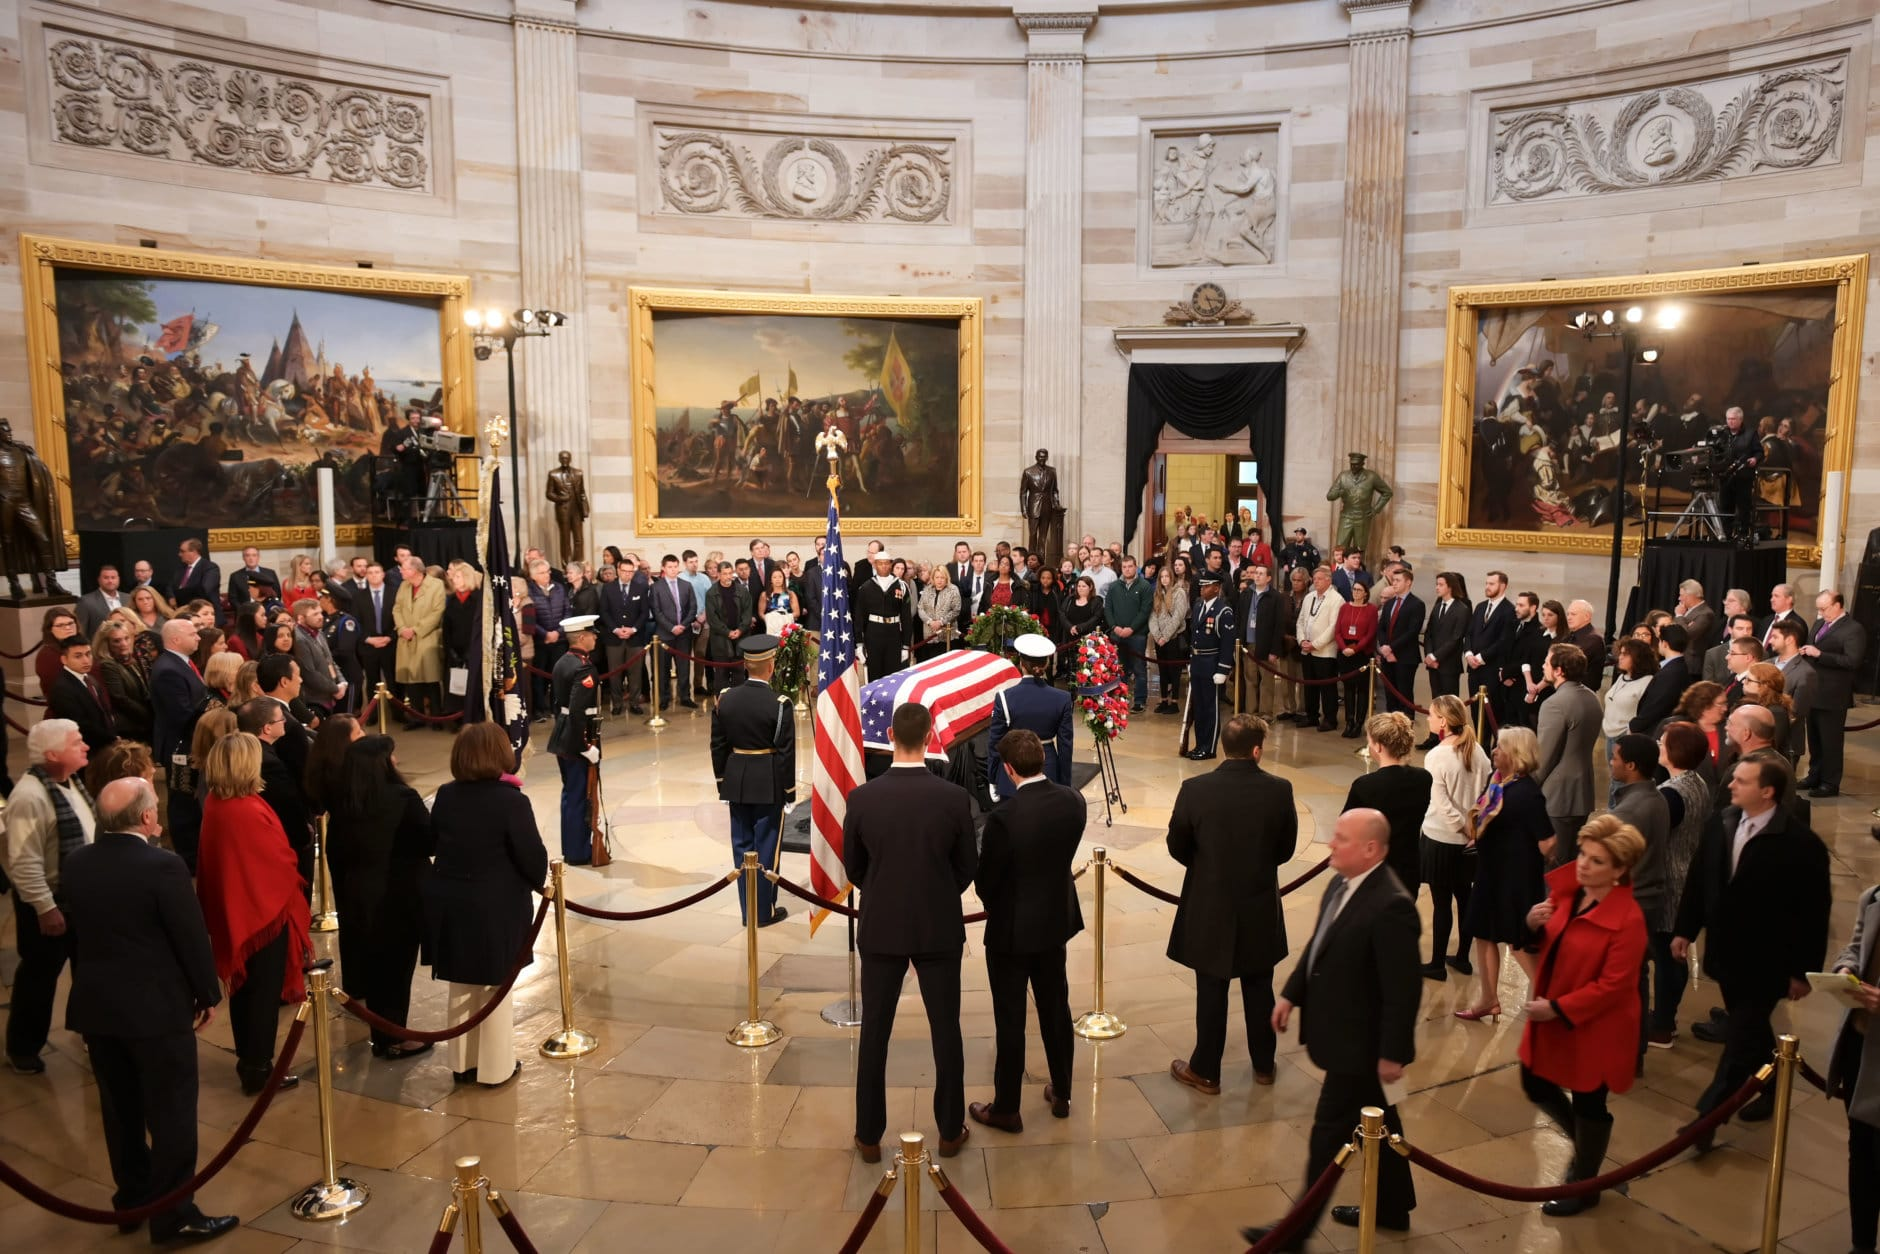 "A crowd at the Capitol Rotunda as President George H.W. Bush lies in state at the U.S. Capitol Rotunda. (Courtesy Shannon Finney/<a href=""https://www.shannonfinneyphotography.com/index"" target=""_blank"" rel=""noopener noreferrer"">shannonfinneyphotography.com</a>)"